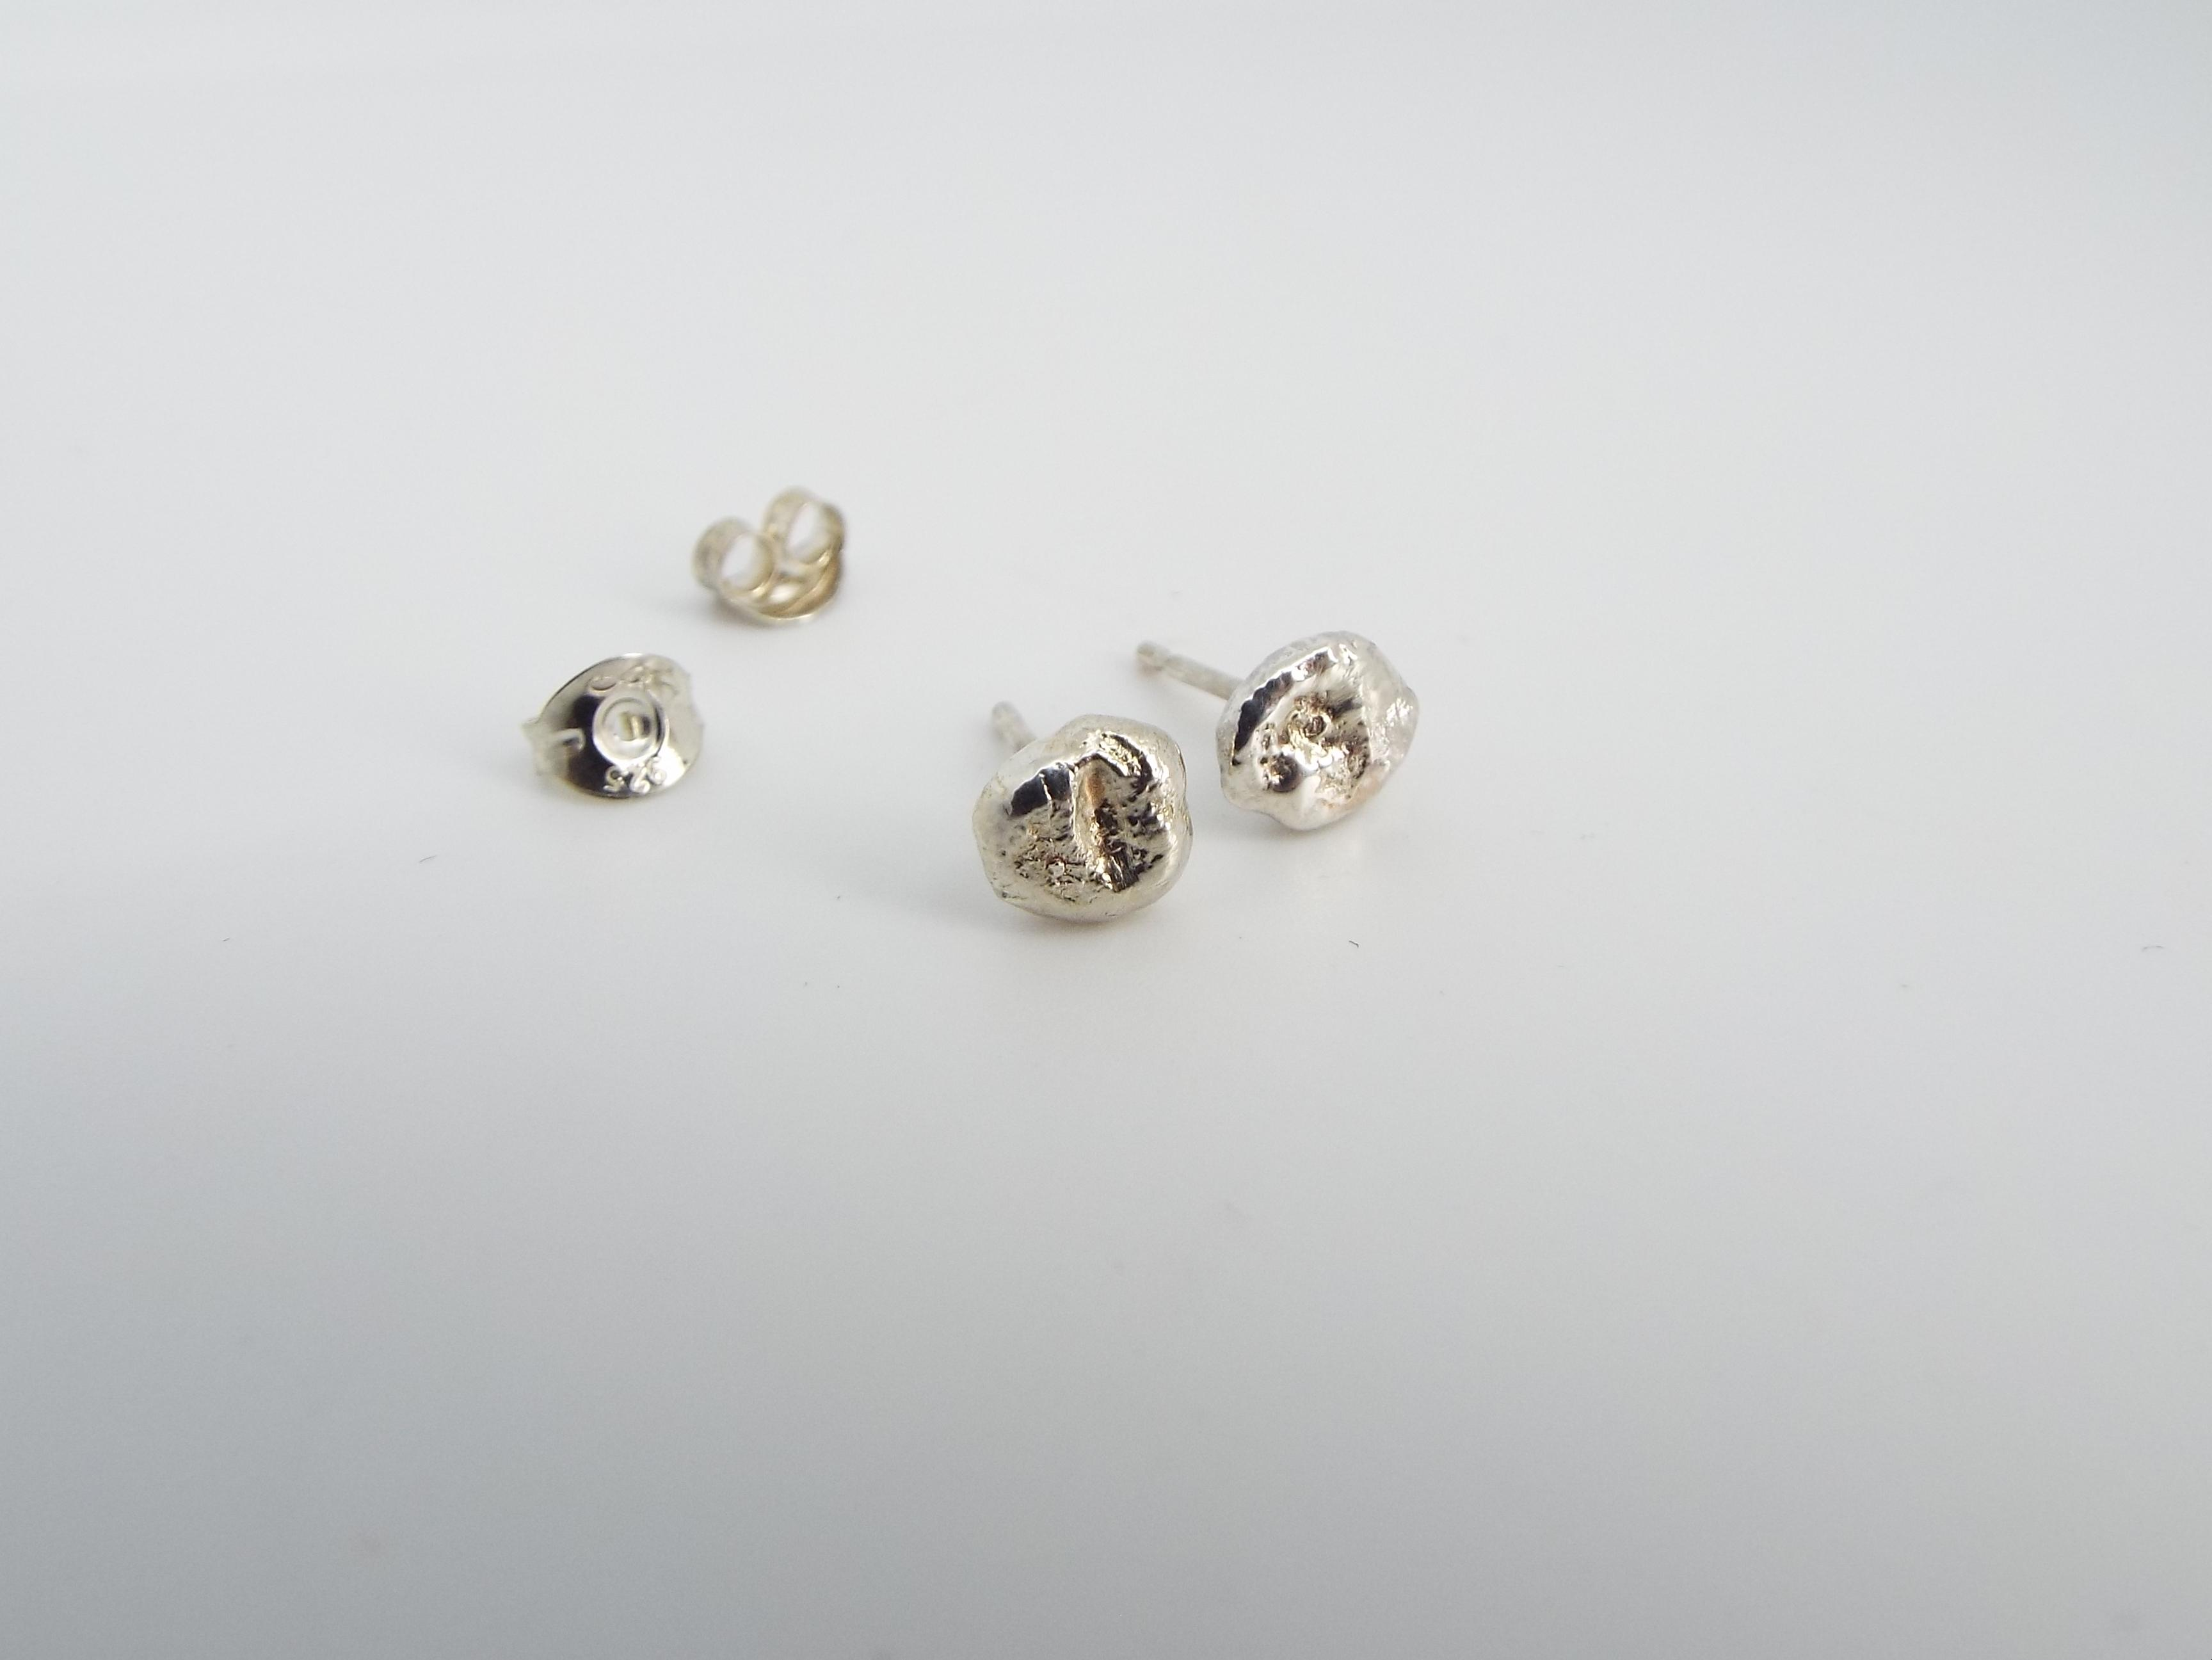 recyled sterling silver textured stud earrings